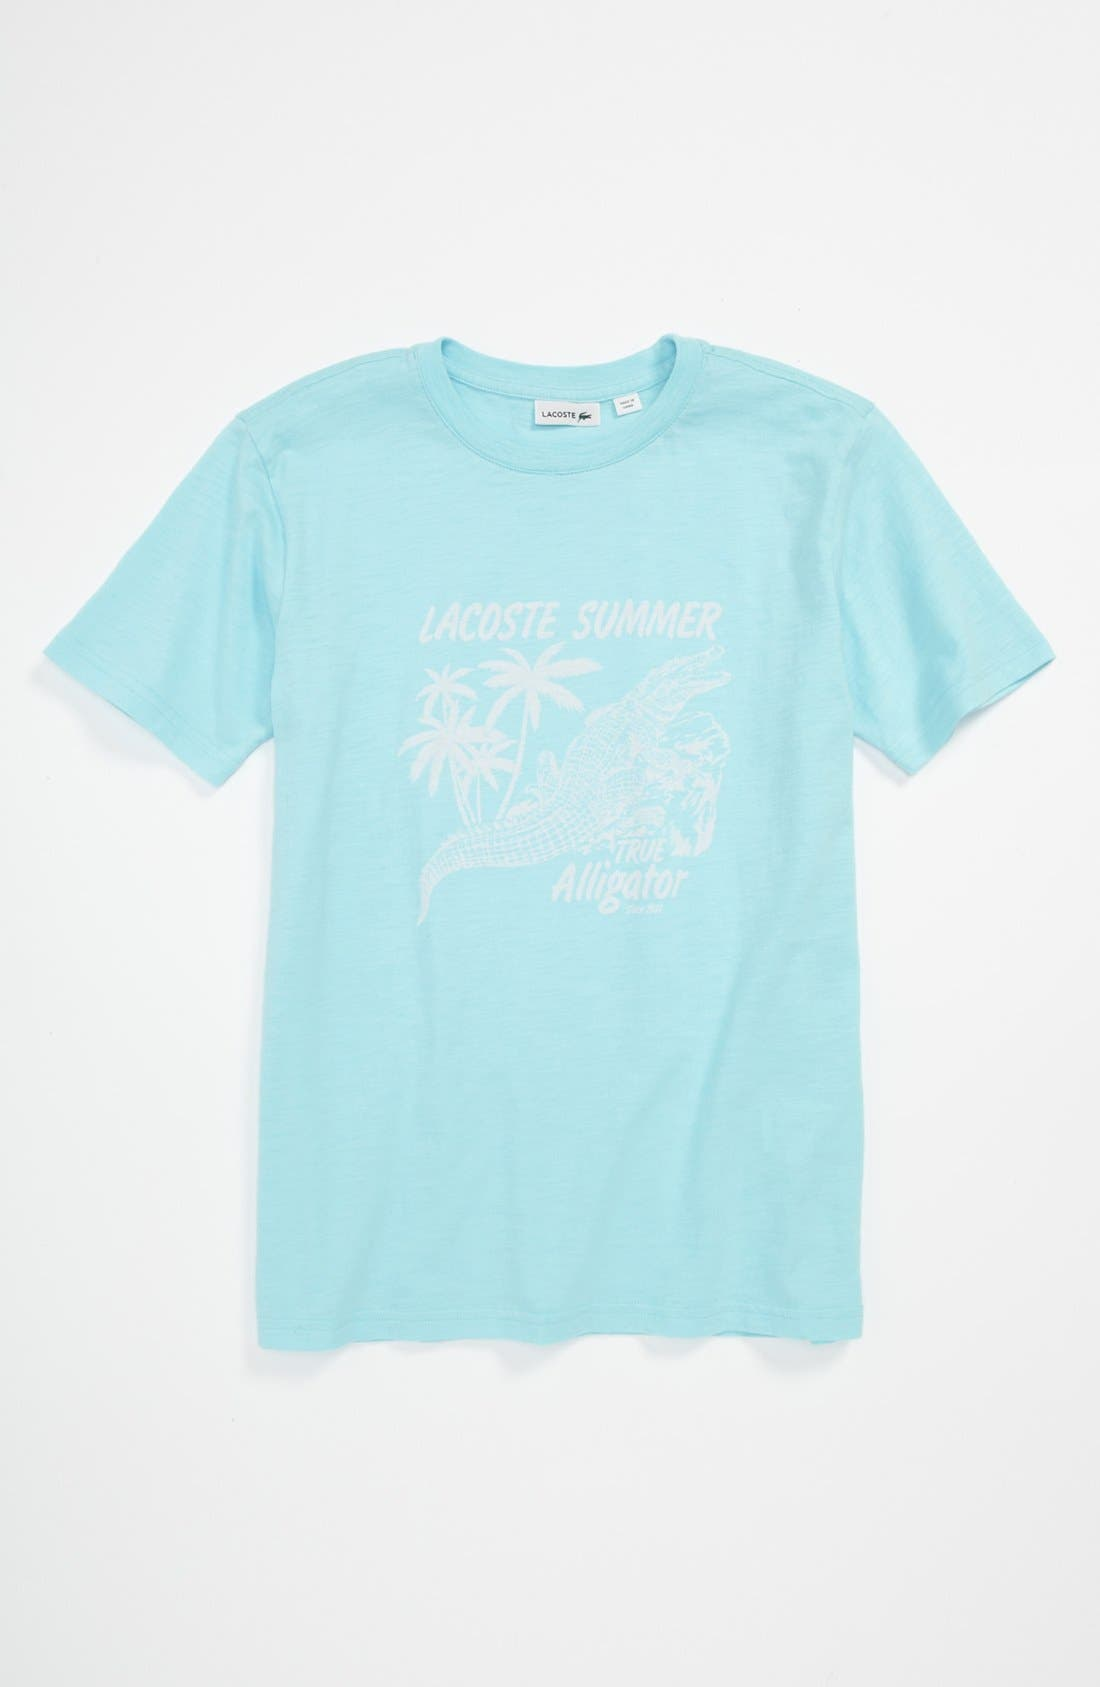 Alternate Image 1 Selected - Lacoste Graphic T-Shirt (Little Boys & Big Boys)